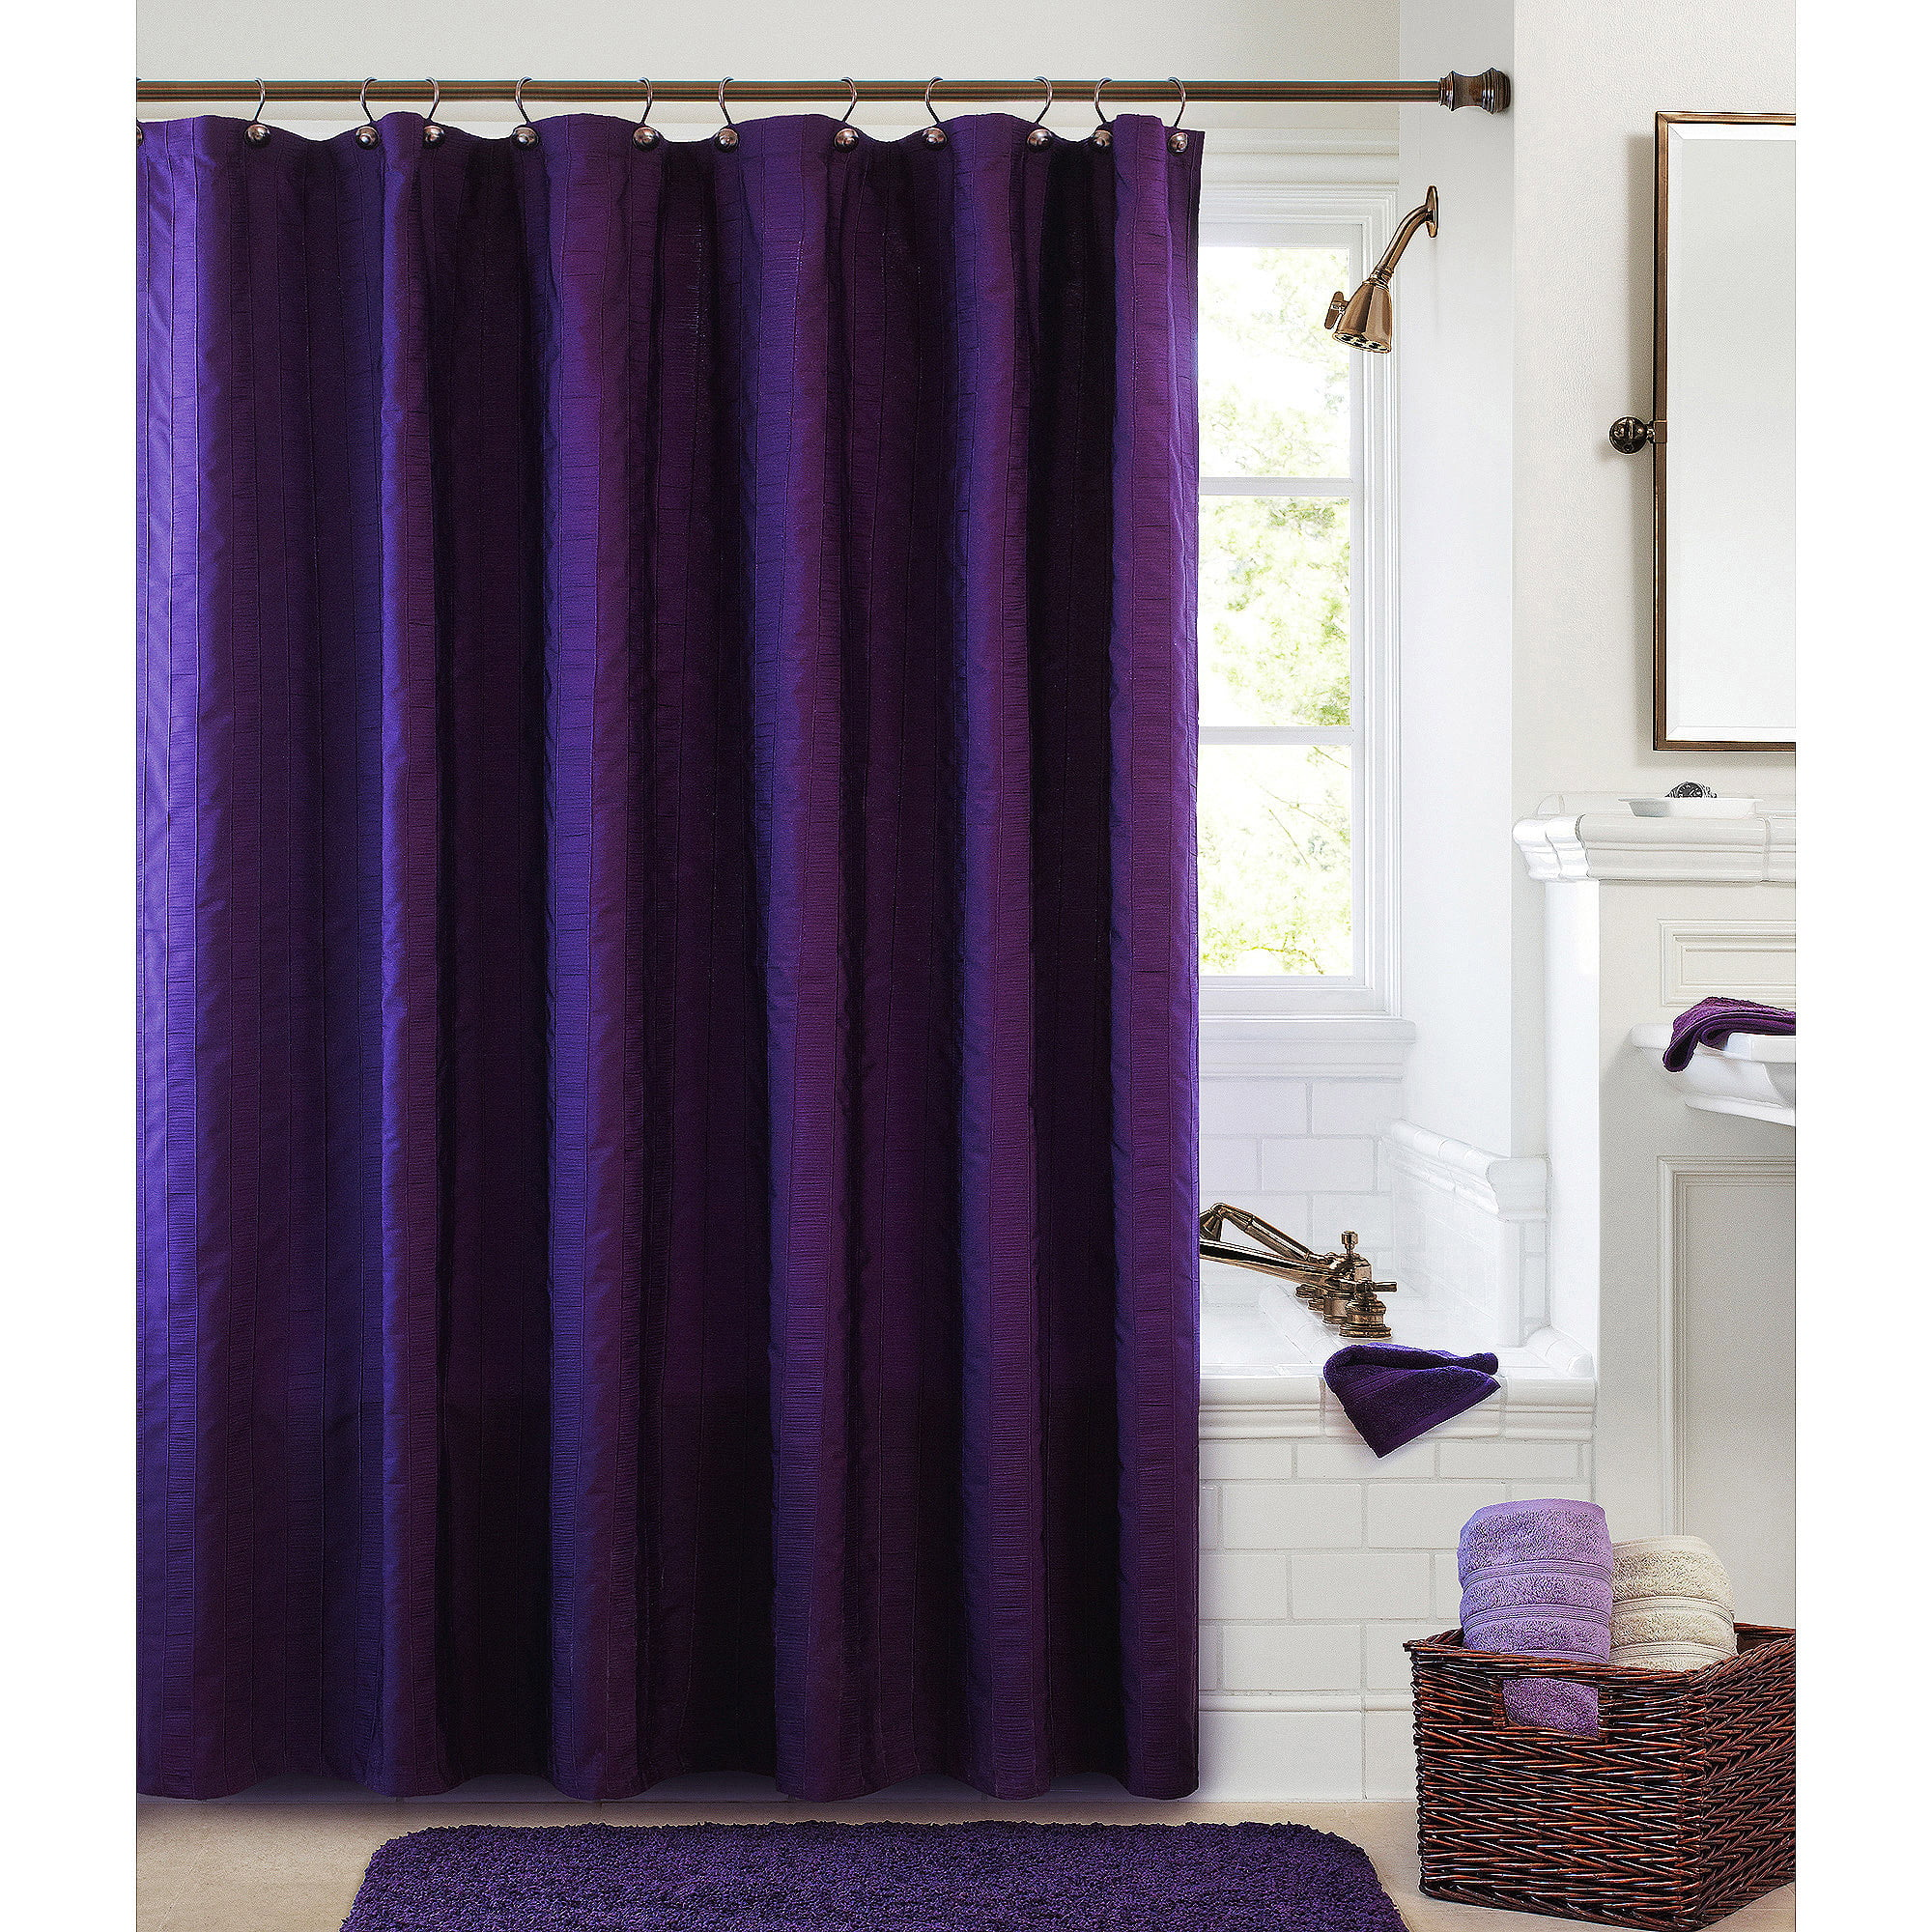 purple and grey shower curtain. Better Homes and Garden Gathered Stripe Fabric Shower Curtain  Walmart com